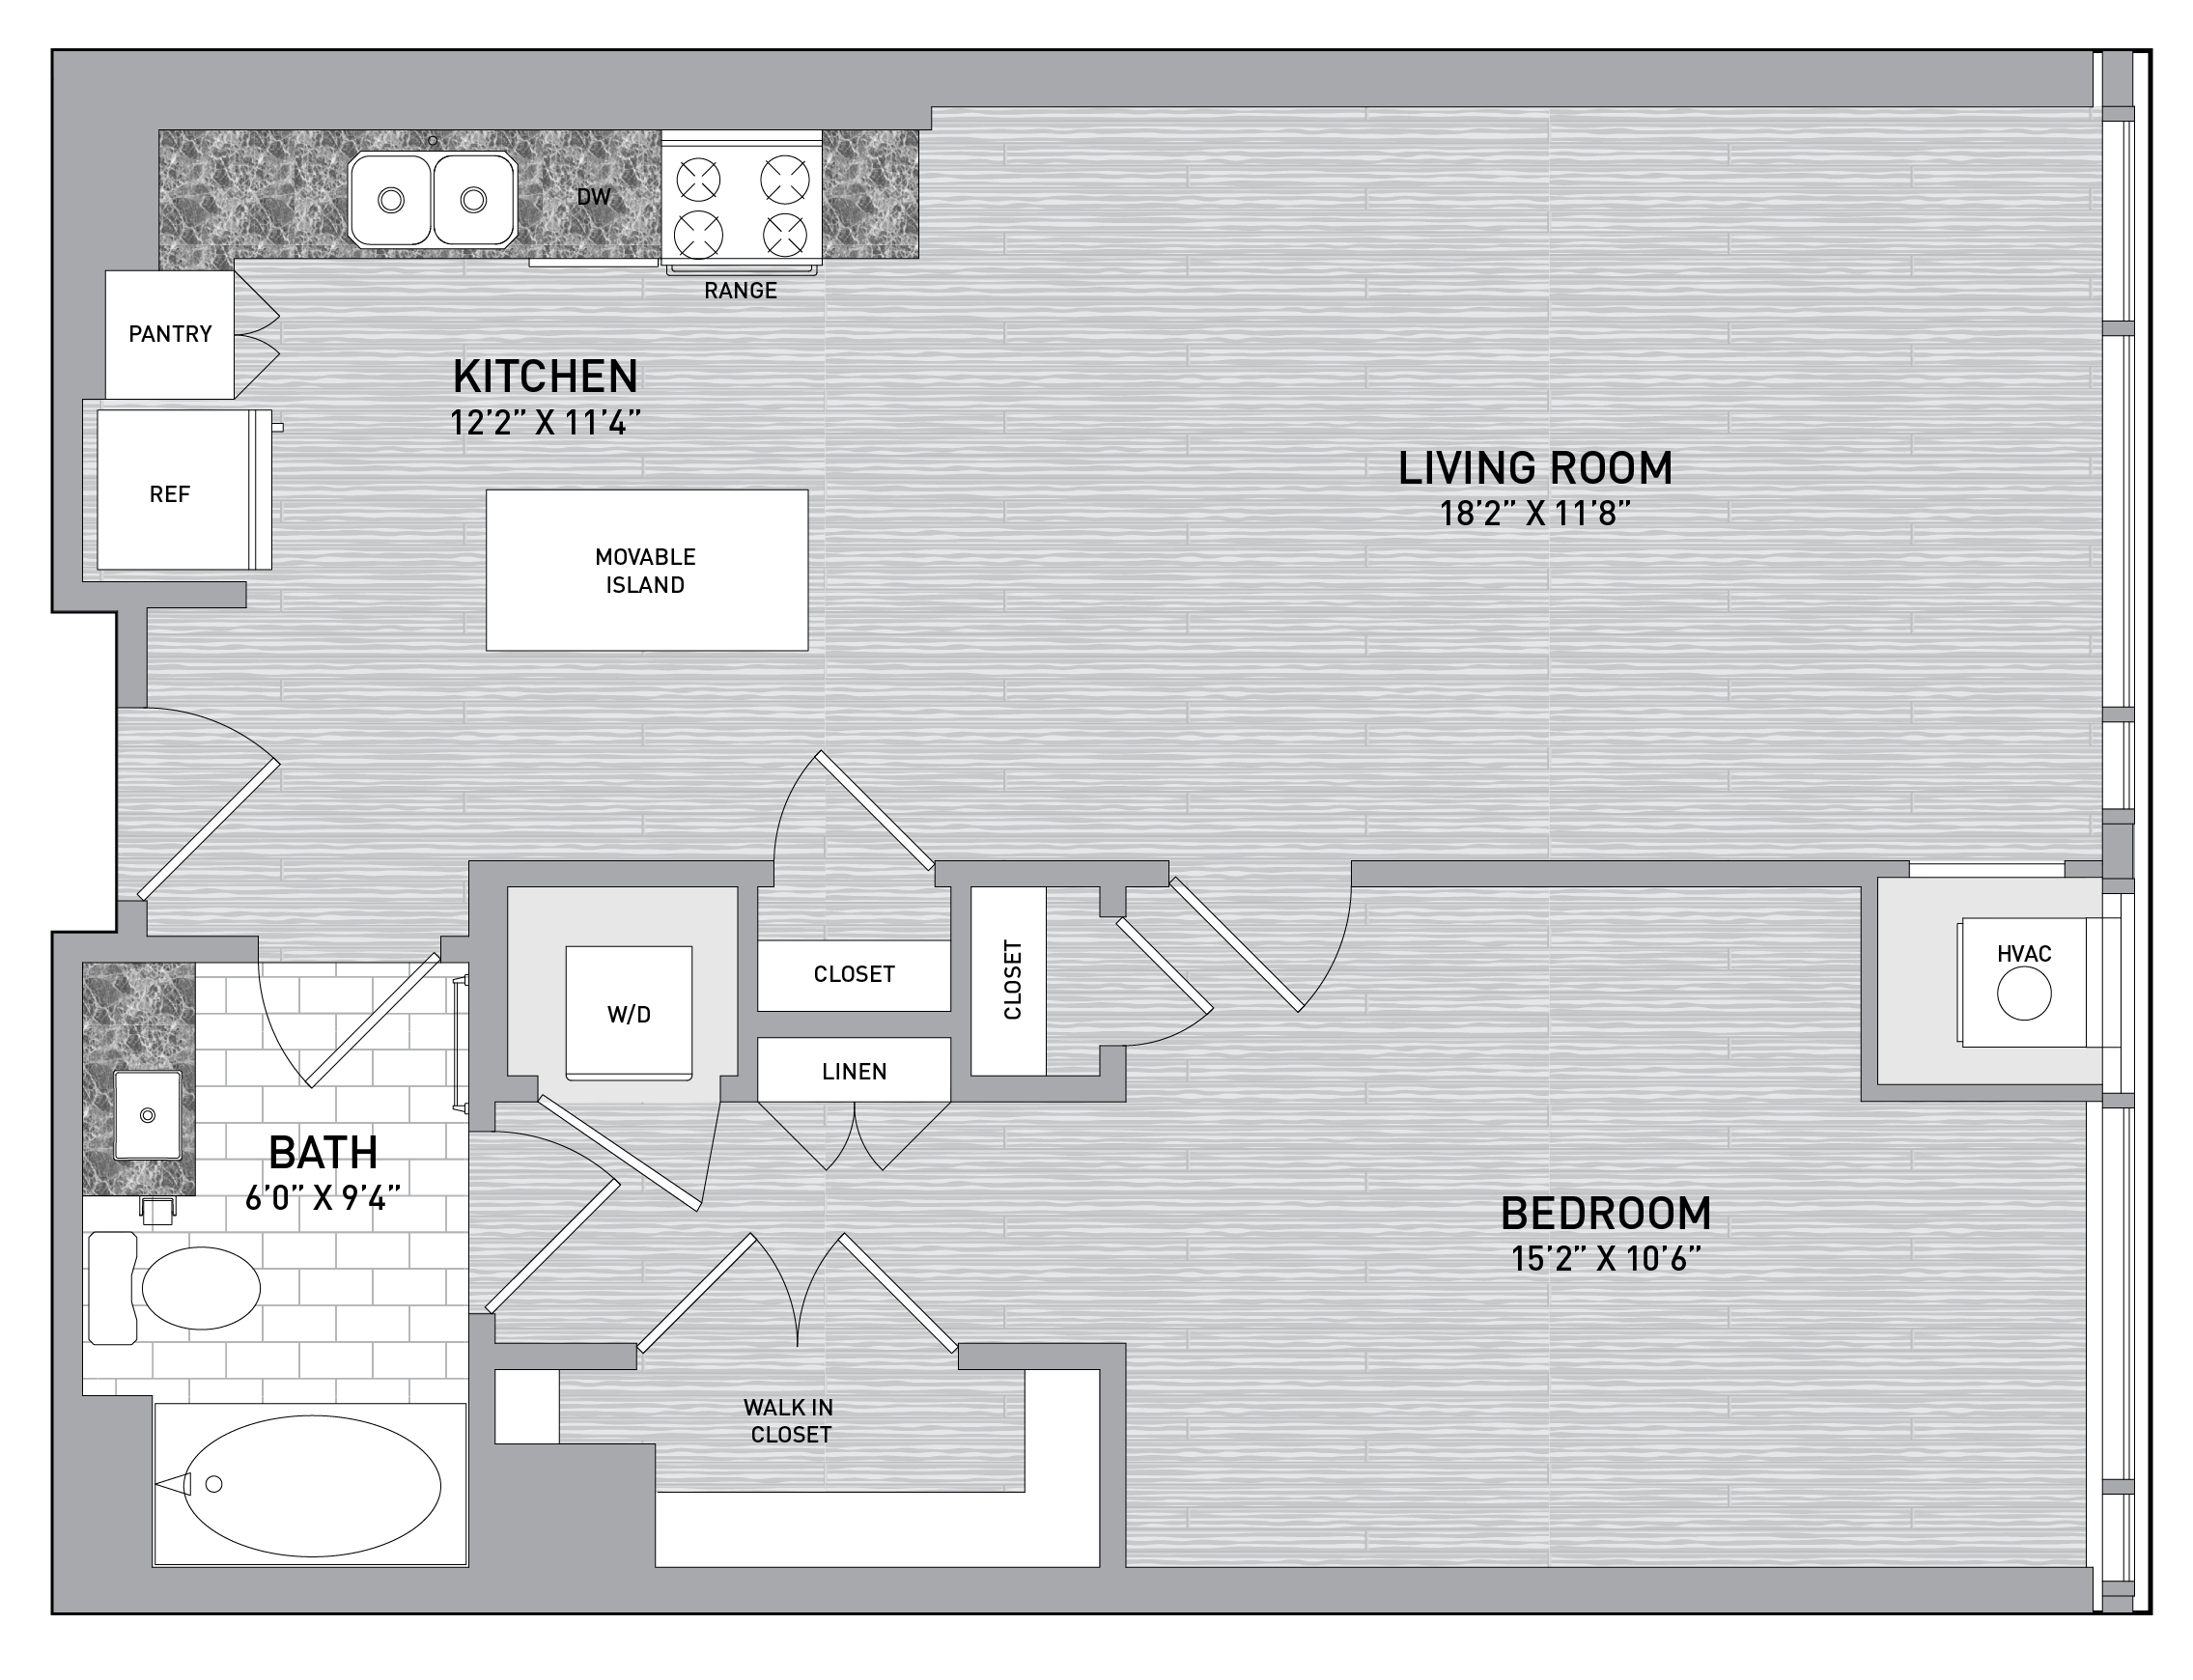 floorplan image of unit id 0625